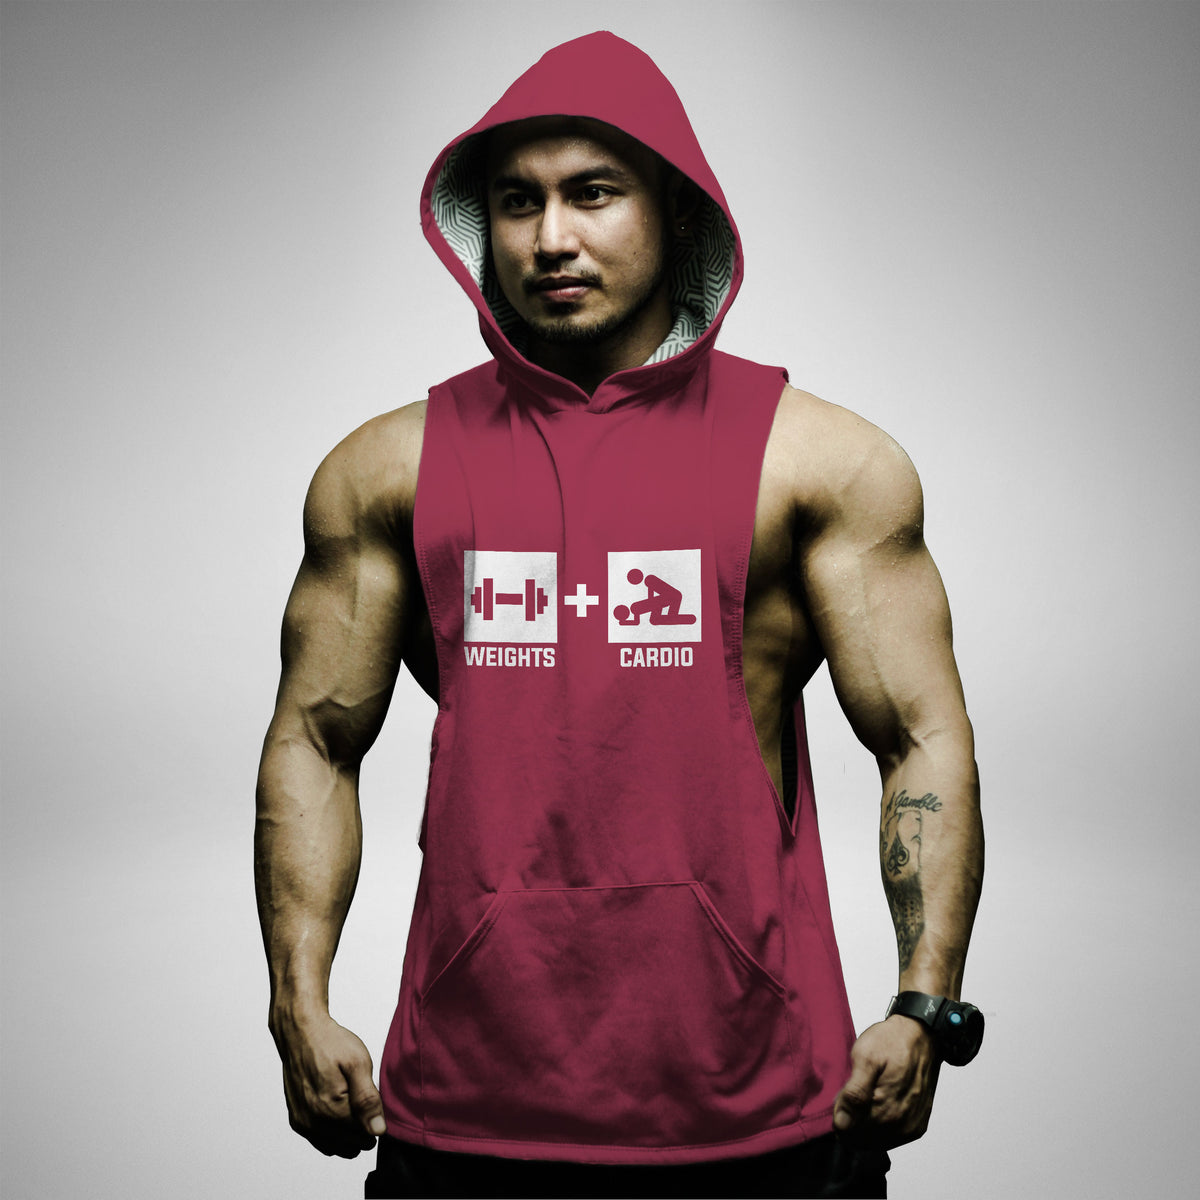 AH135 Weights + Cardio Sleeveless Hoodie